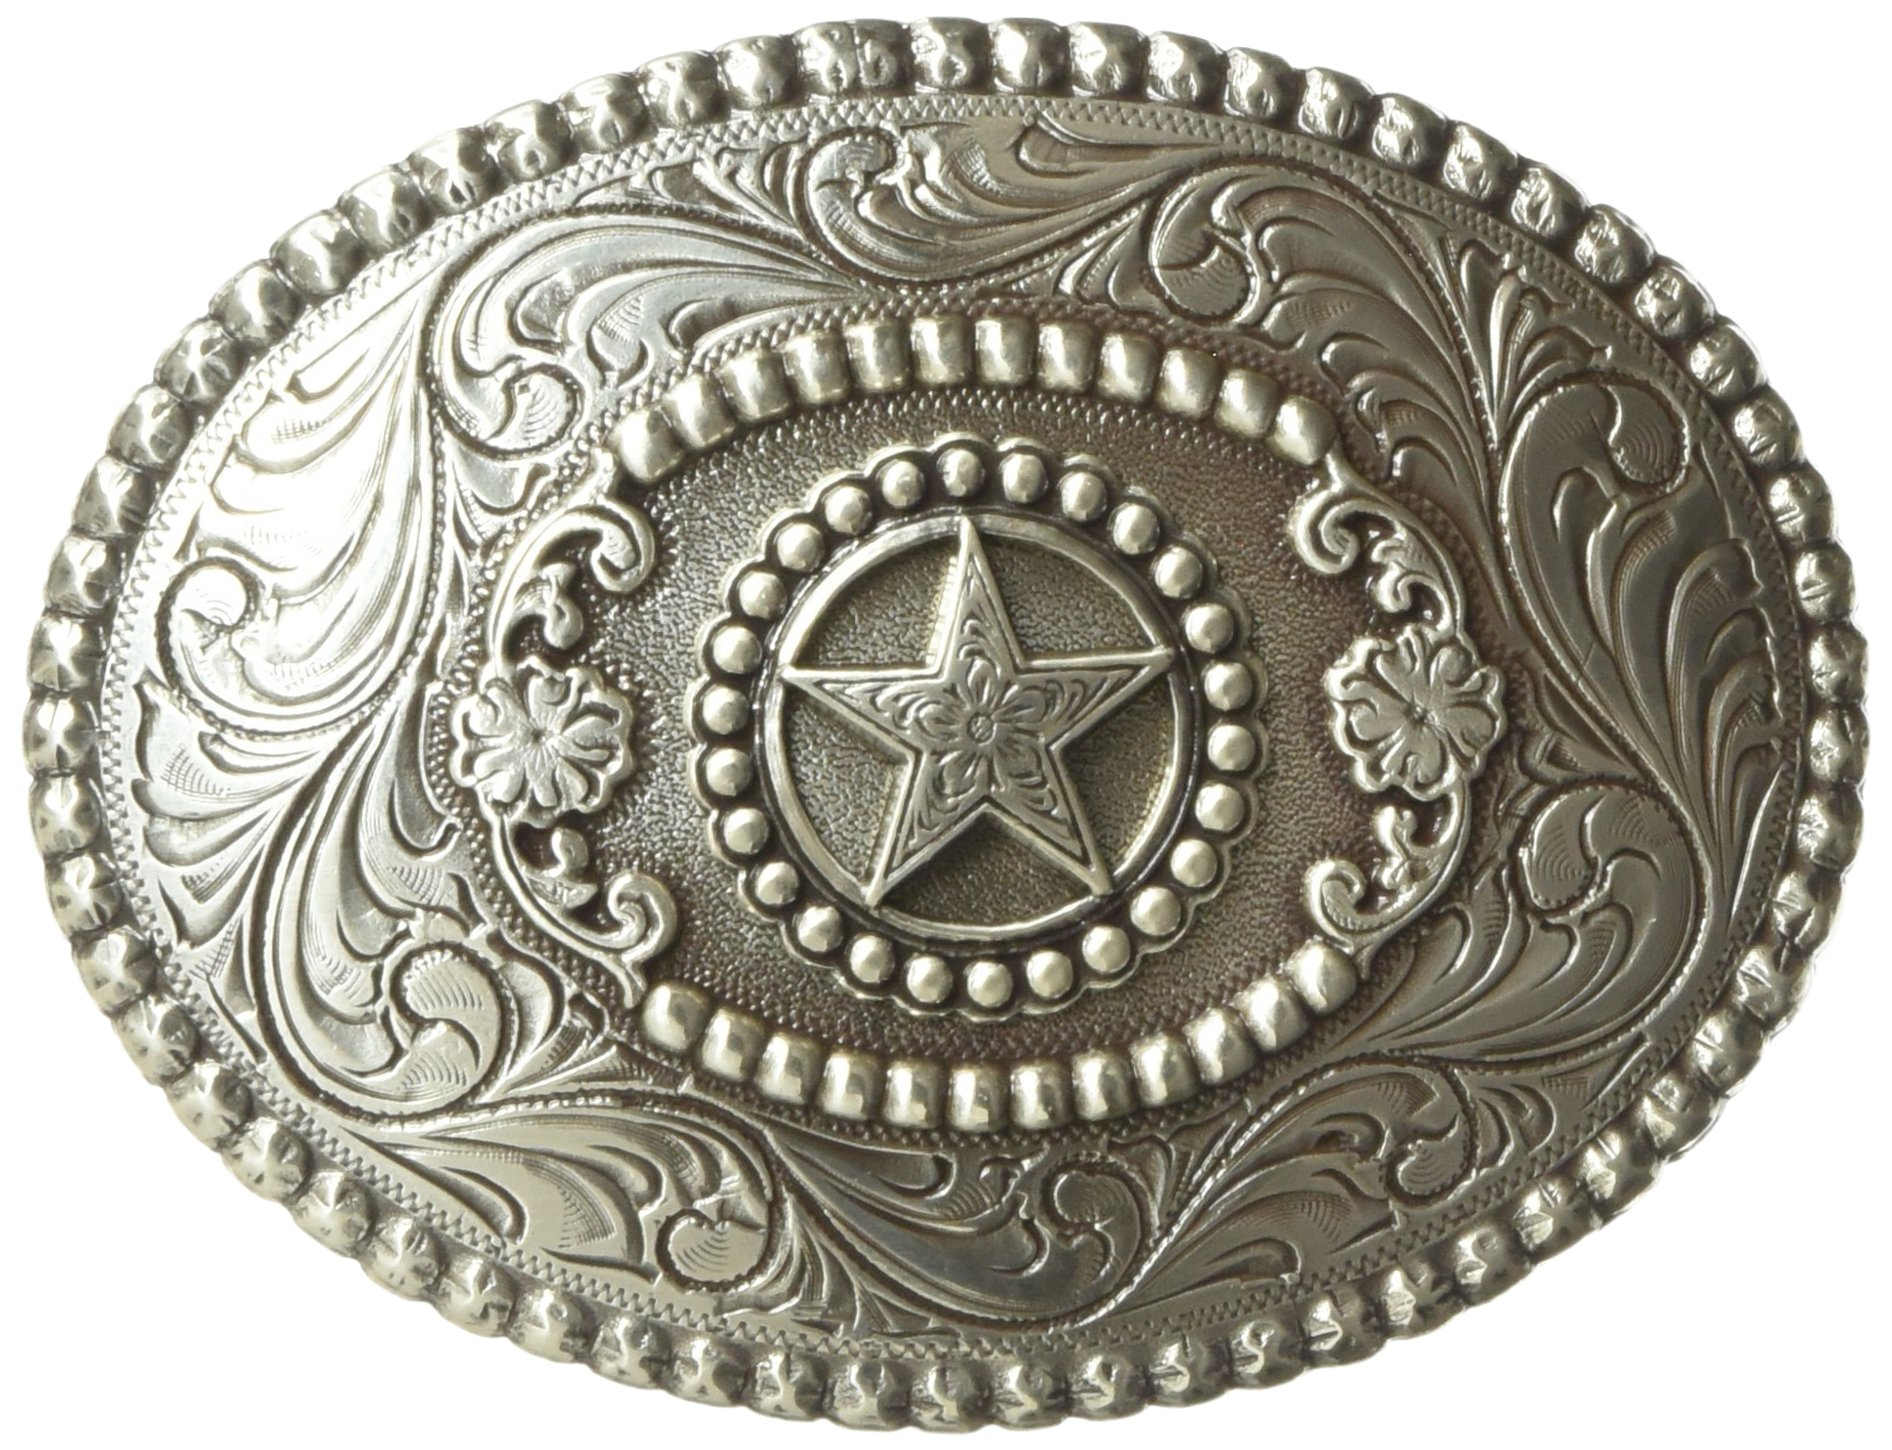 Nocona Men's Small Star Buckle, Silver, One Size